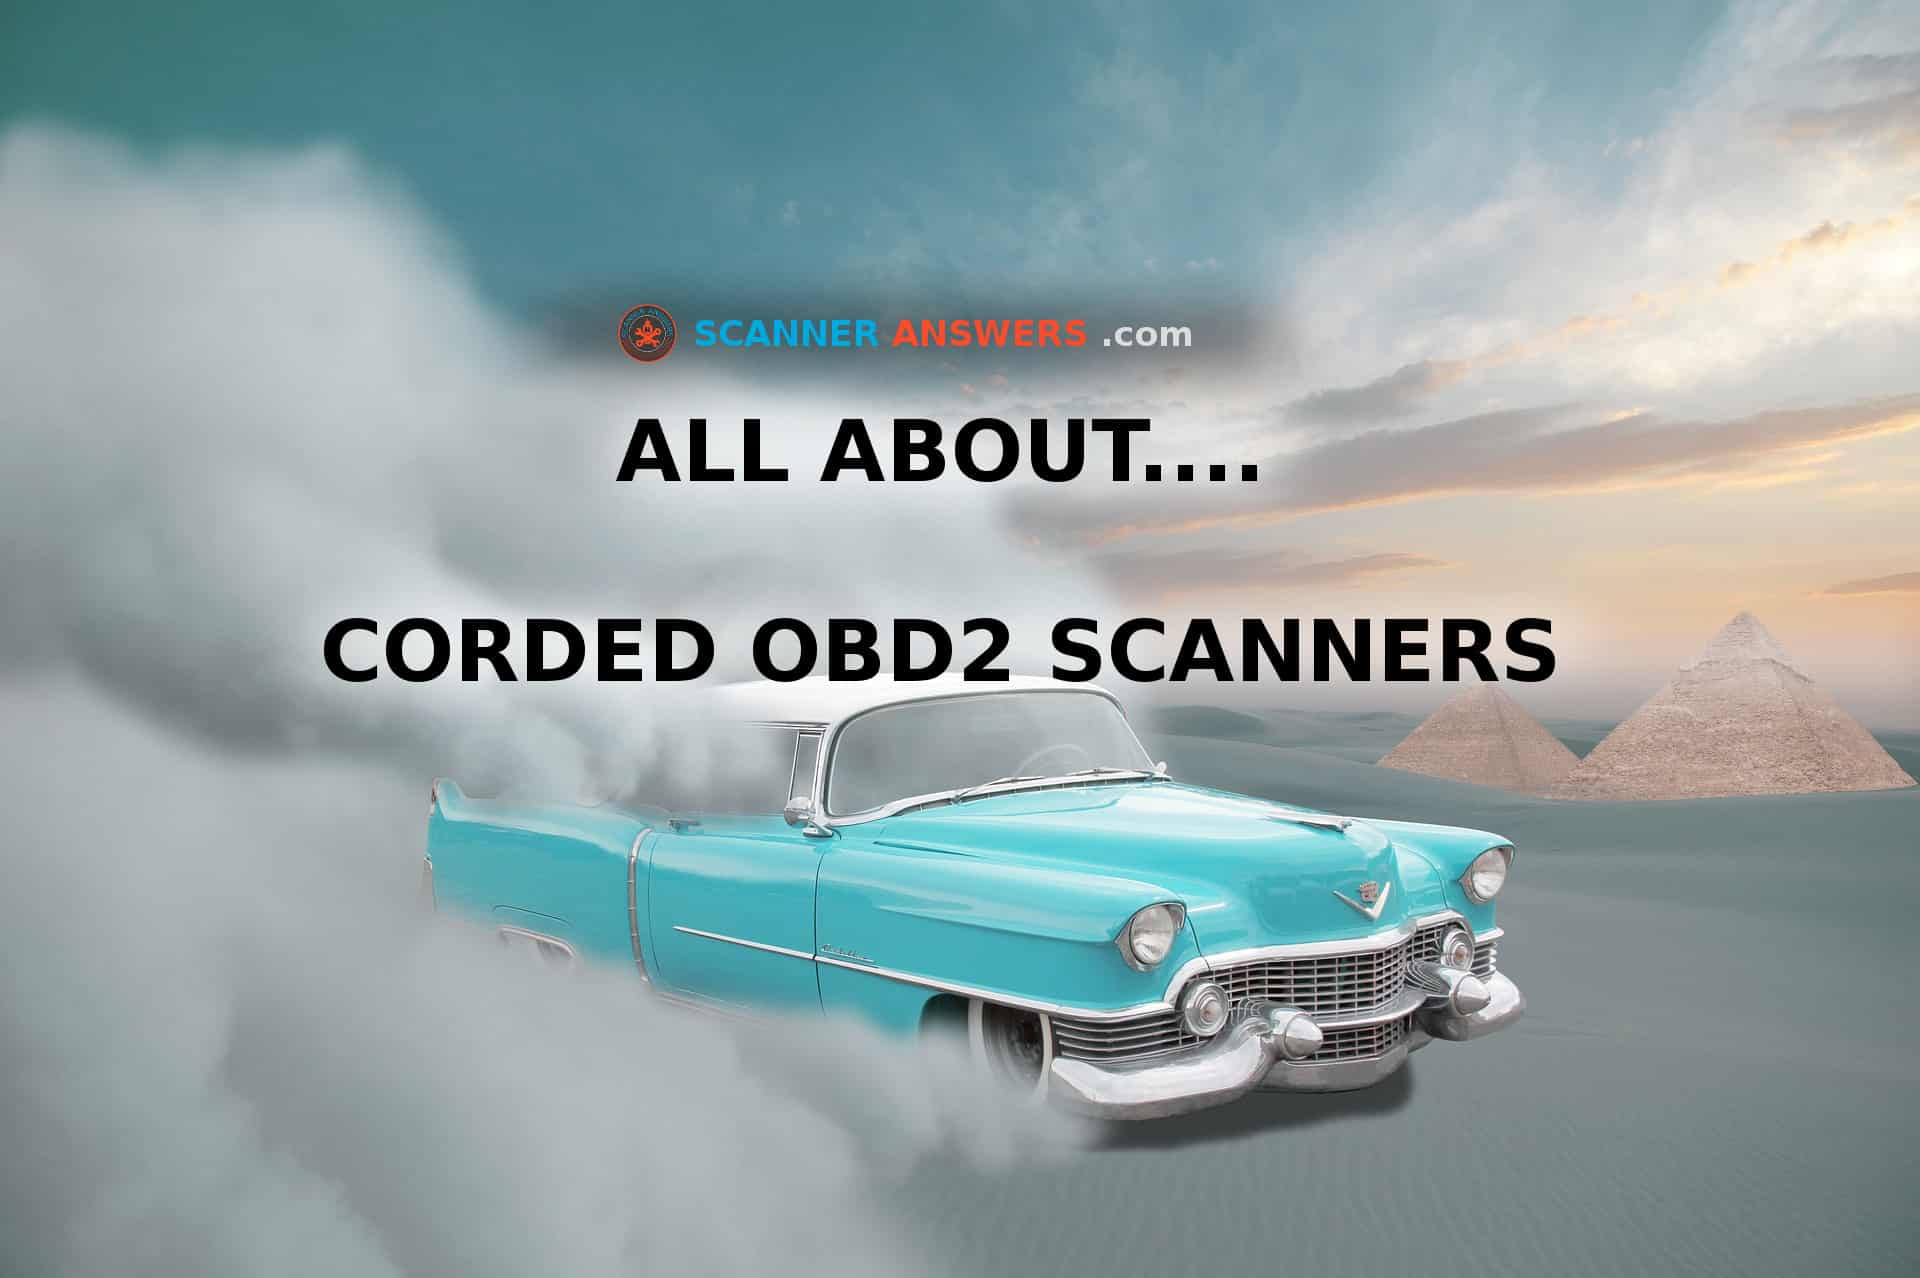 obd2 corded scanners